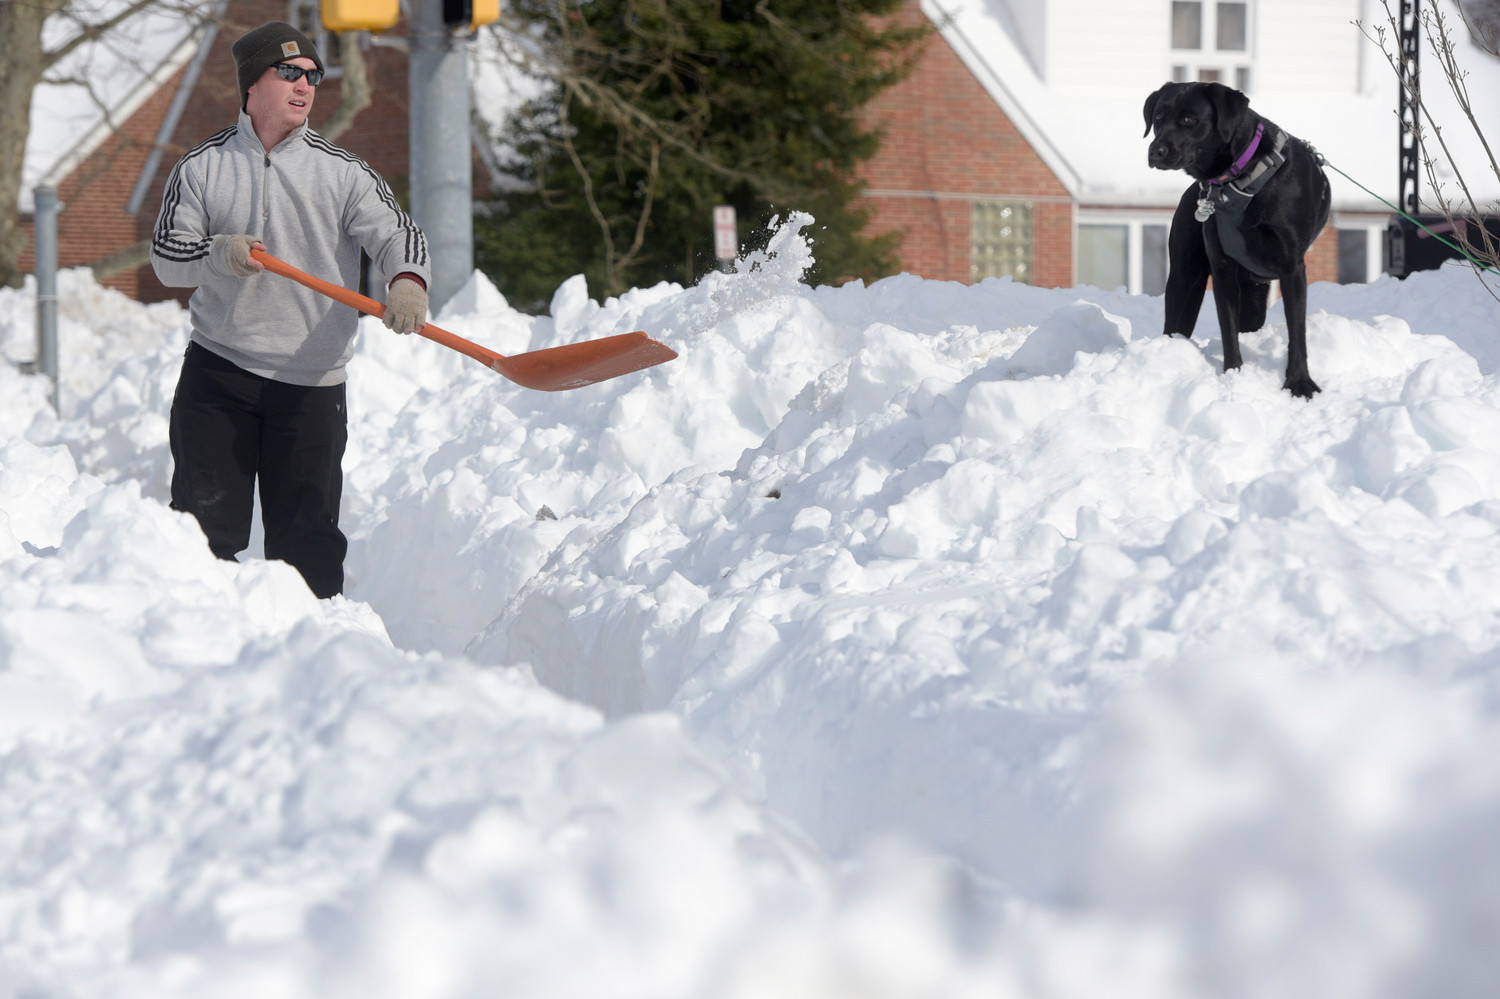 Northeast Faces Another Wallop of Snow